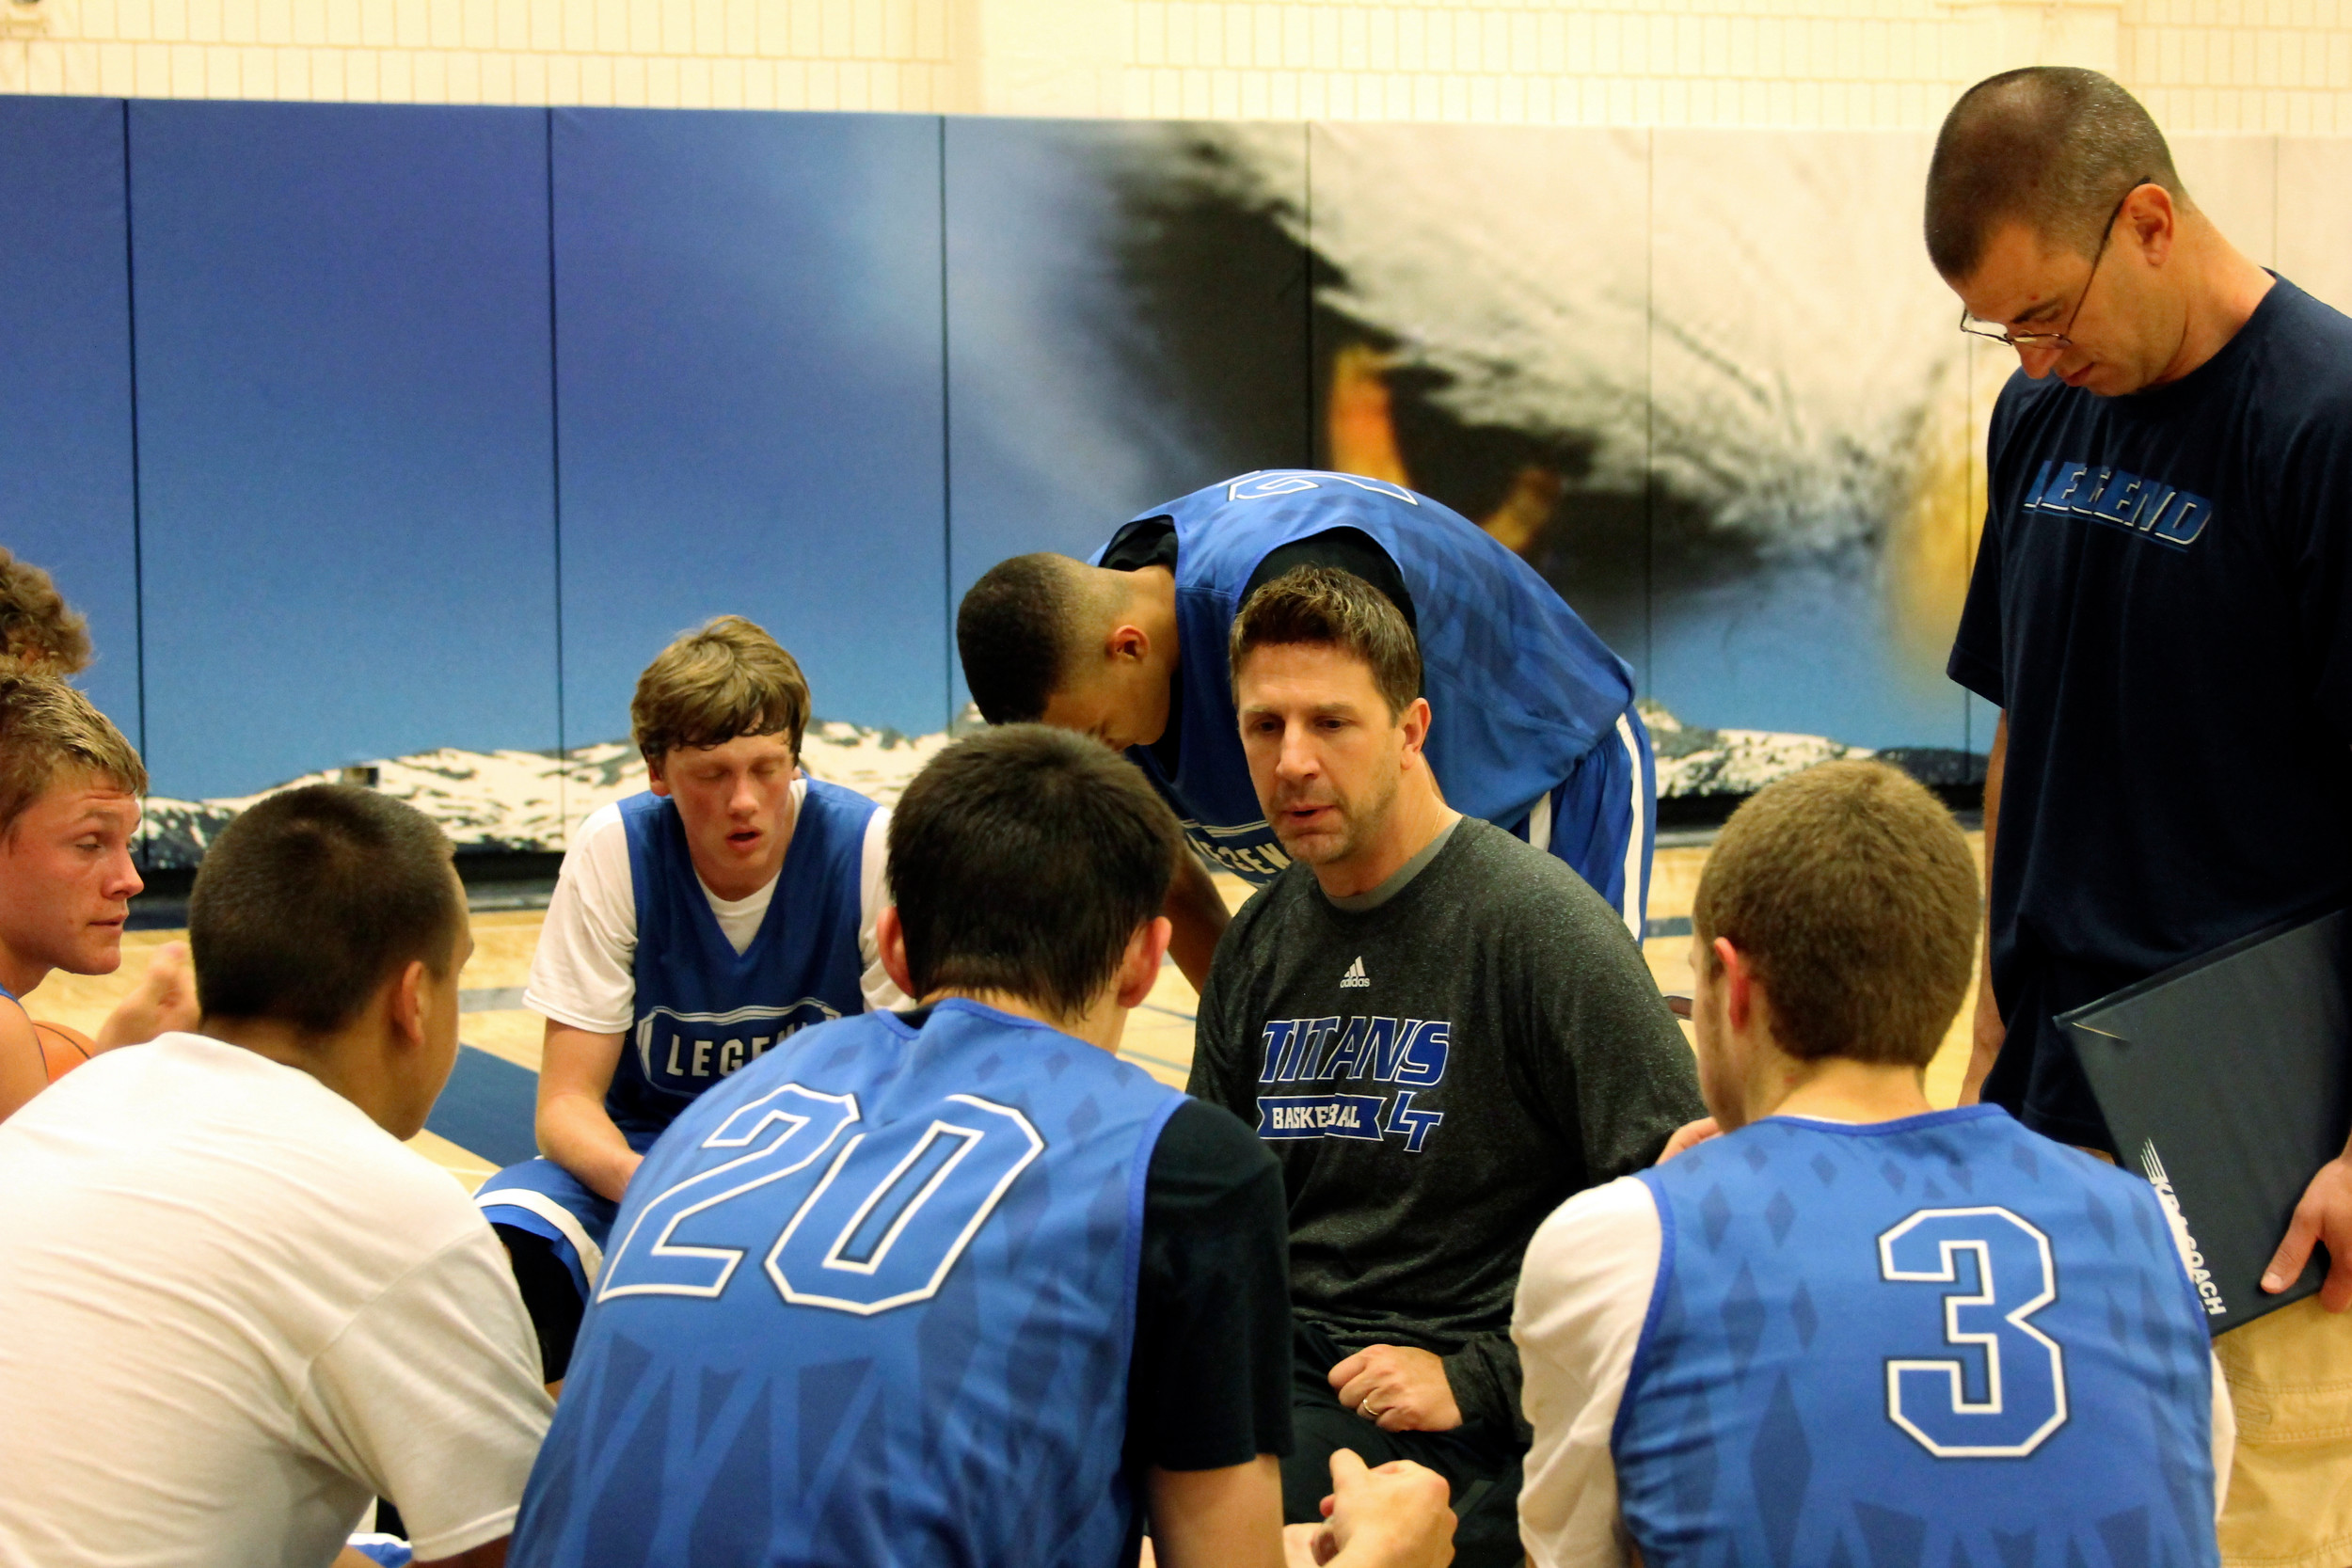 Scott Fellers, Legend head basketball coach, talks to his players at the conclusion of the three-day Continental-Centennial tournament. The coach said he was pleased with his team's performance as they went 5-1 in the June 19-21 tournament.